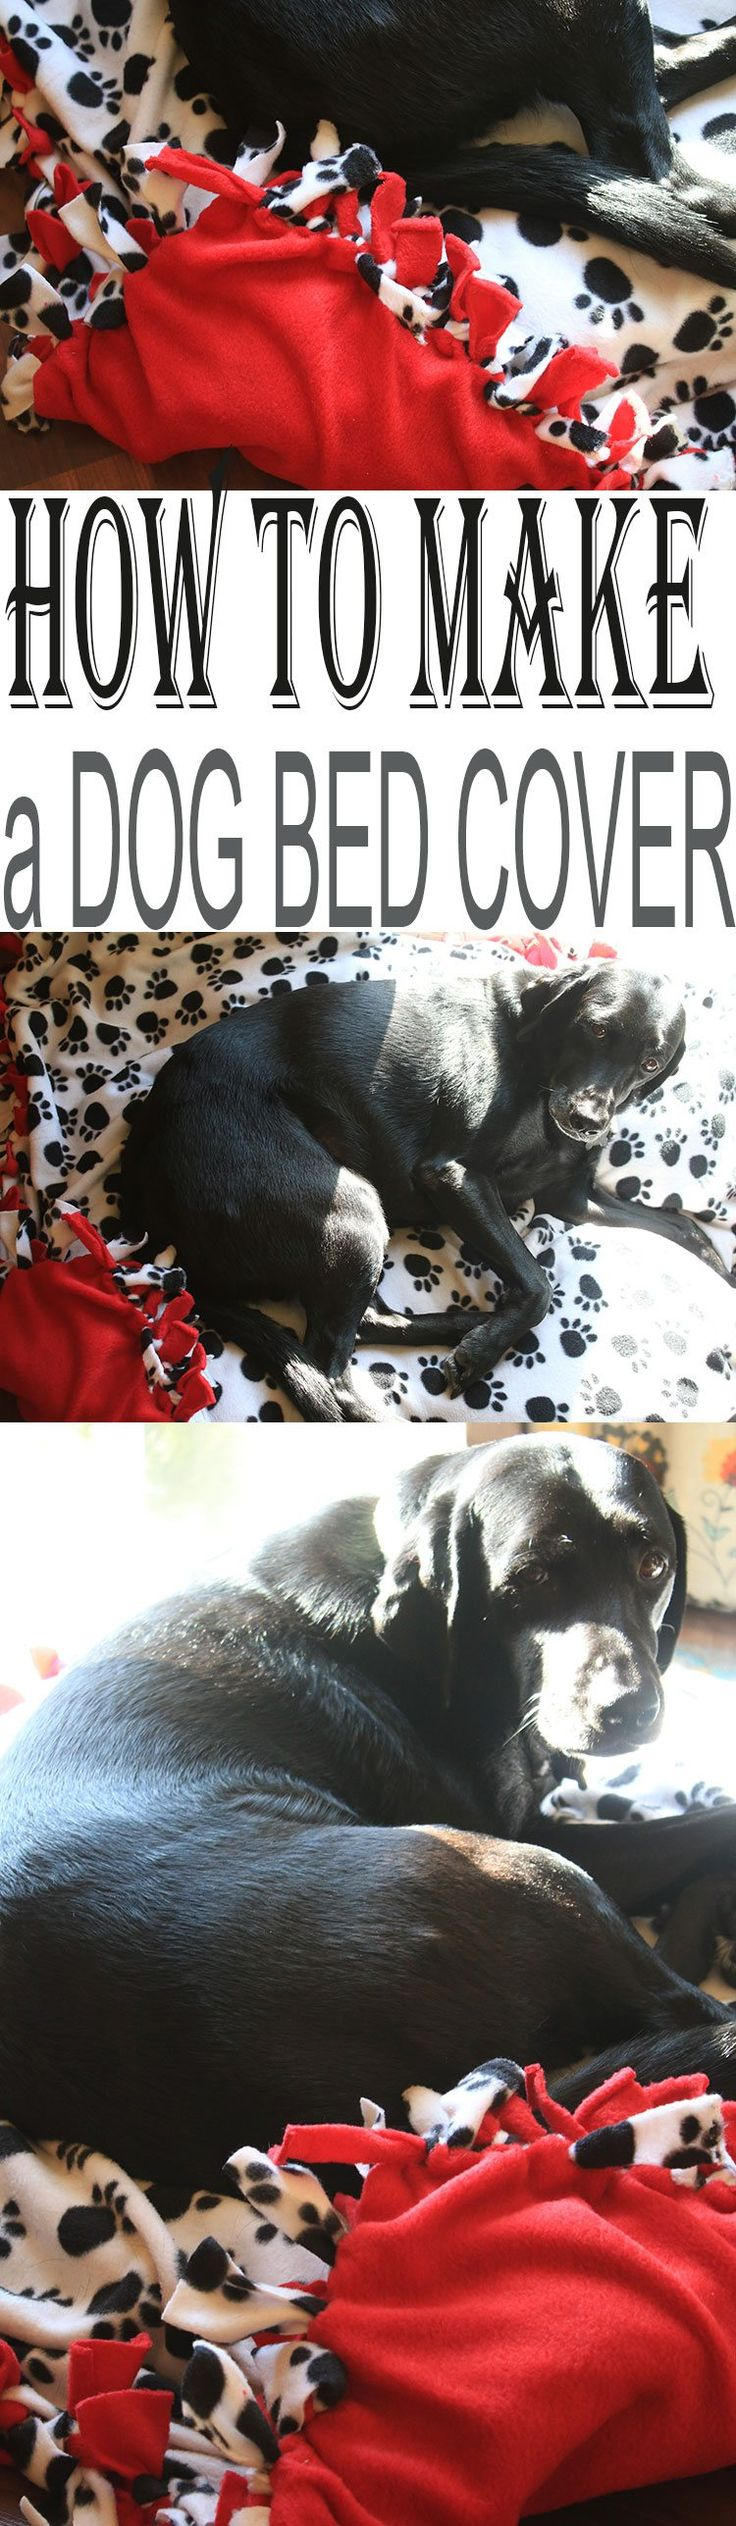 Learn How to Make a No Sew Dog Bed Cover - a super easy way to show your pet you care! #ToPetsWithLove #ad